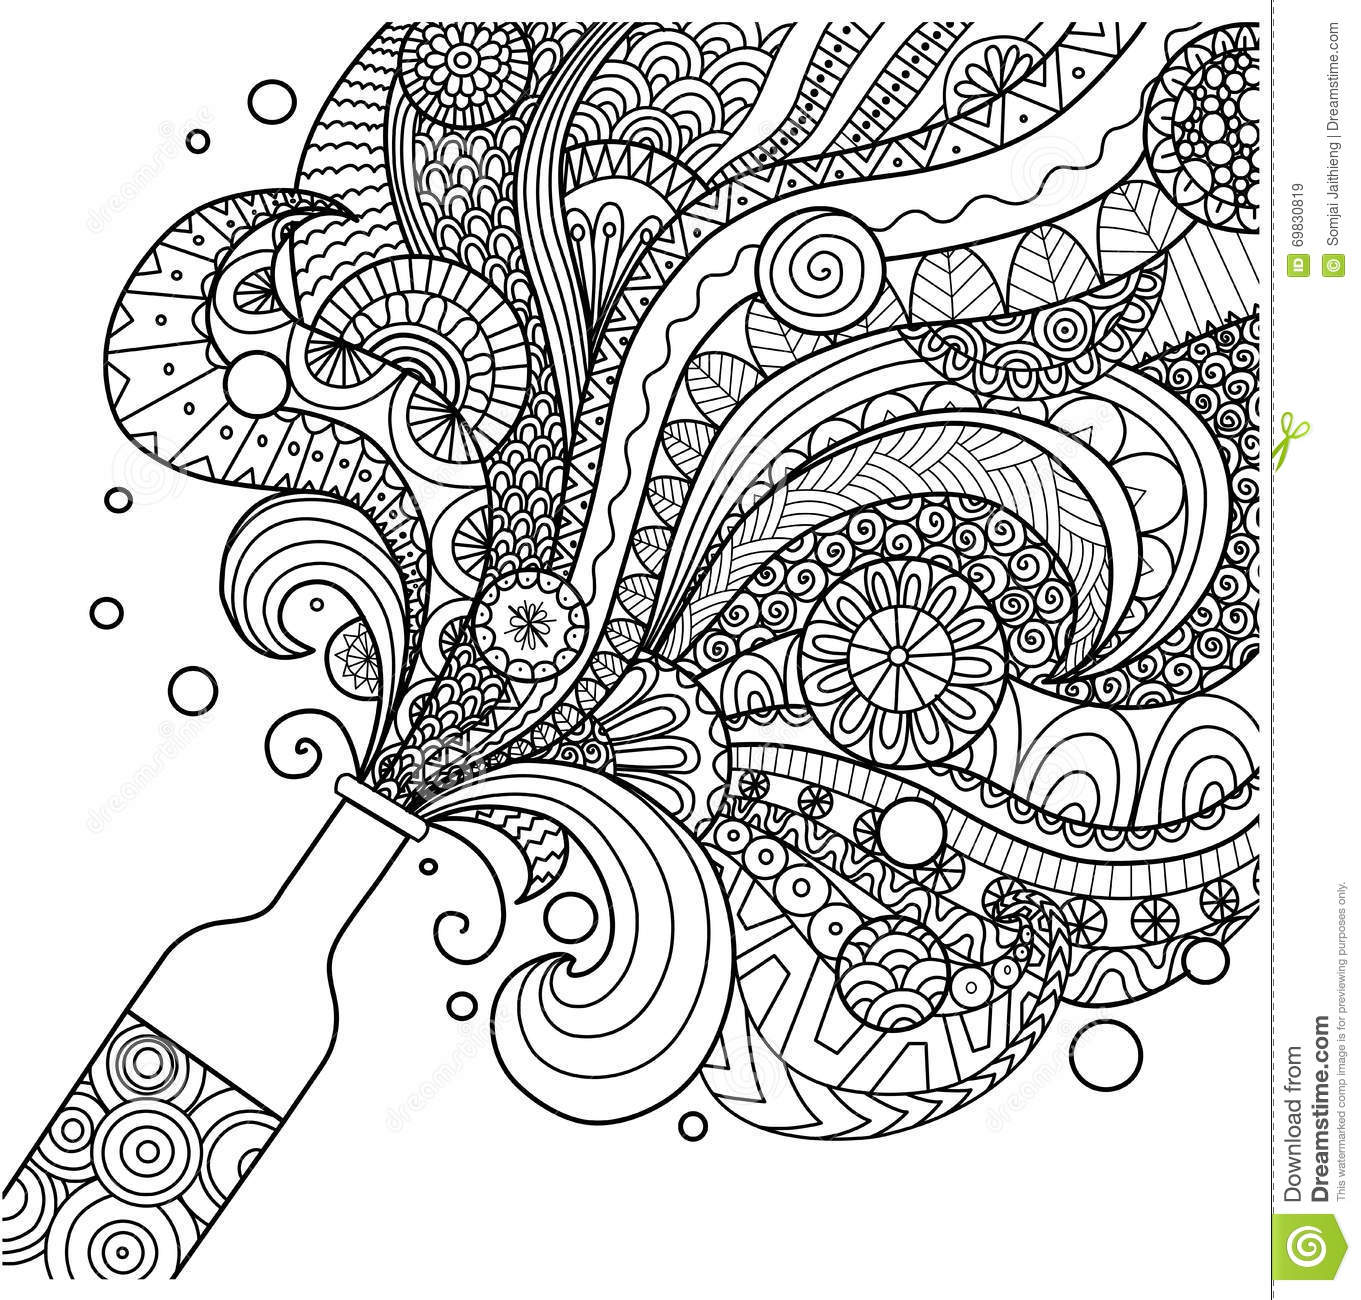 New Line Art Design : Champagne bottle line art design for coloring book